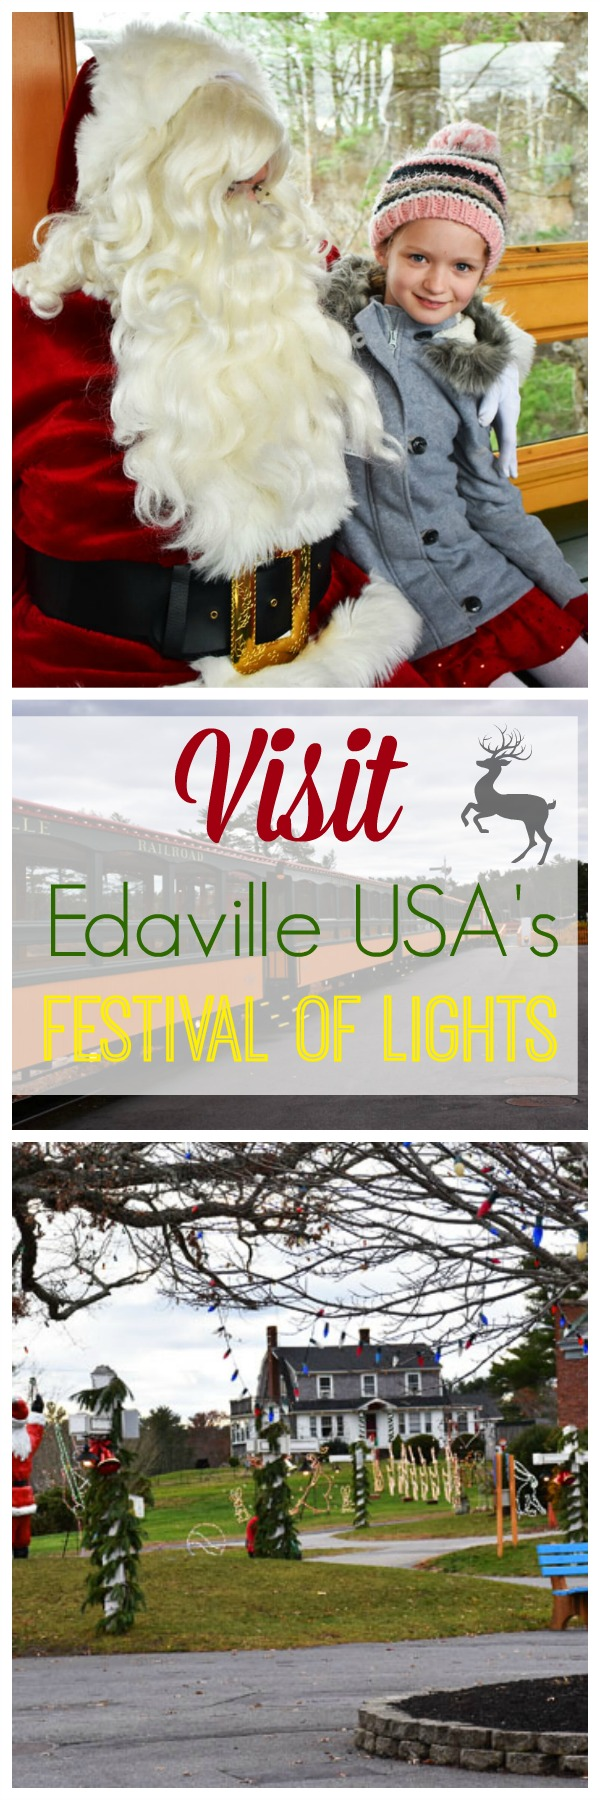 visit-edaville-usas-festival-of-lights